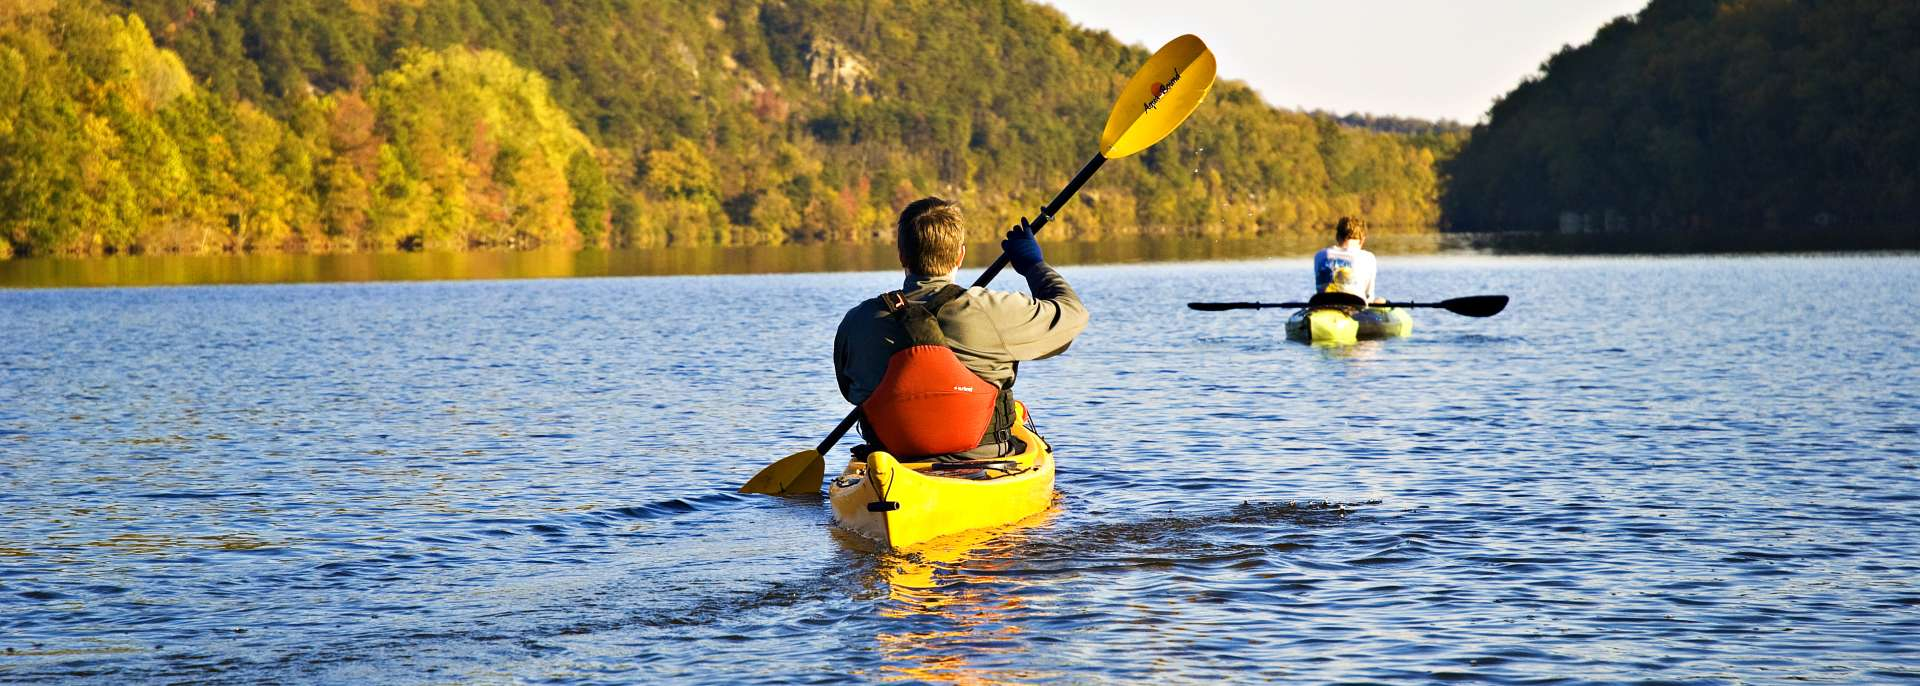 Kayaking in Rowan County